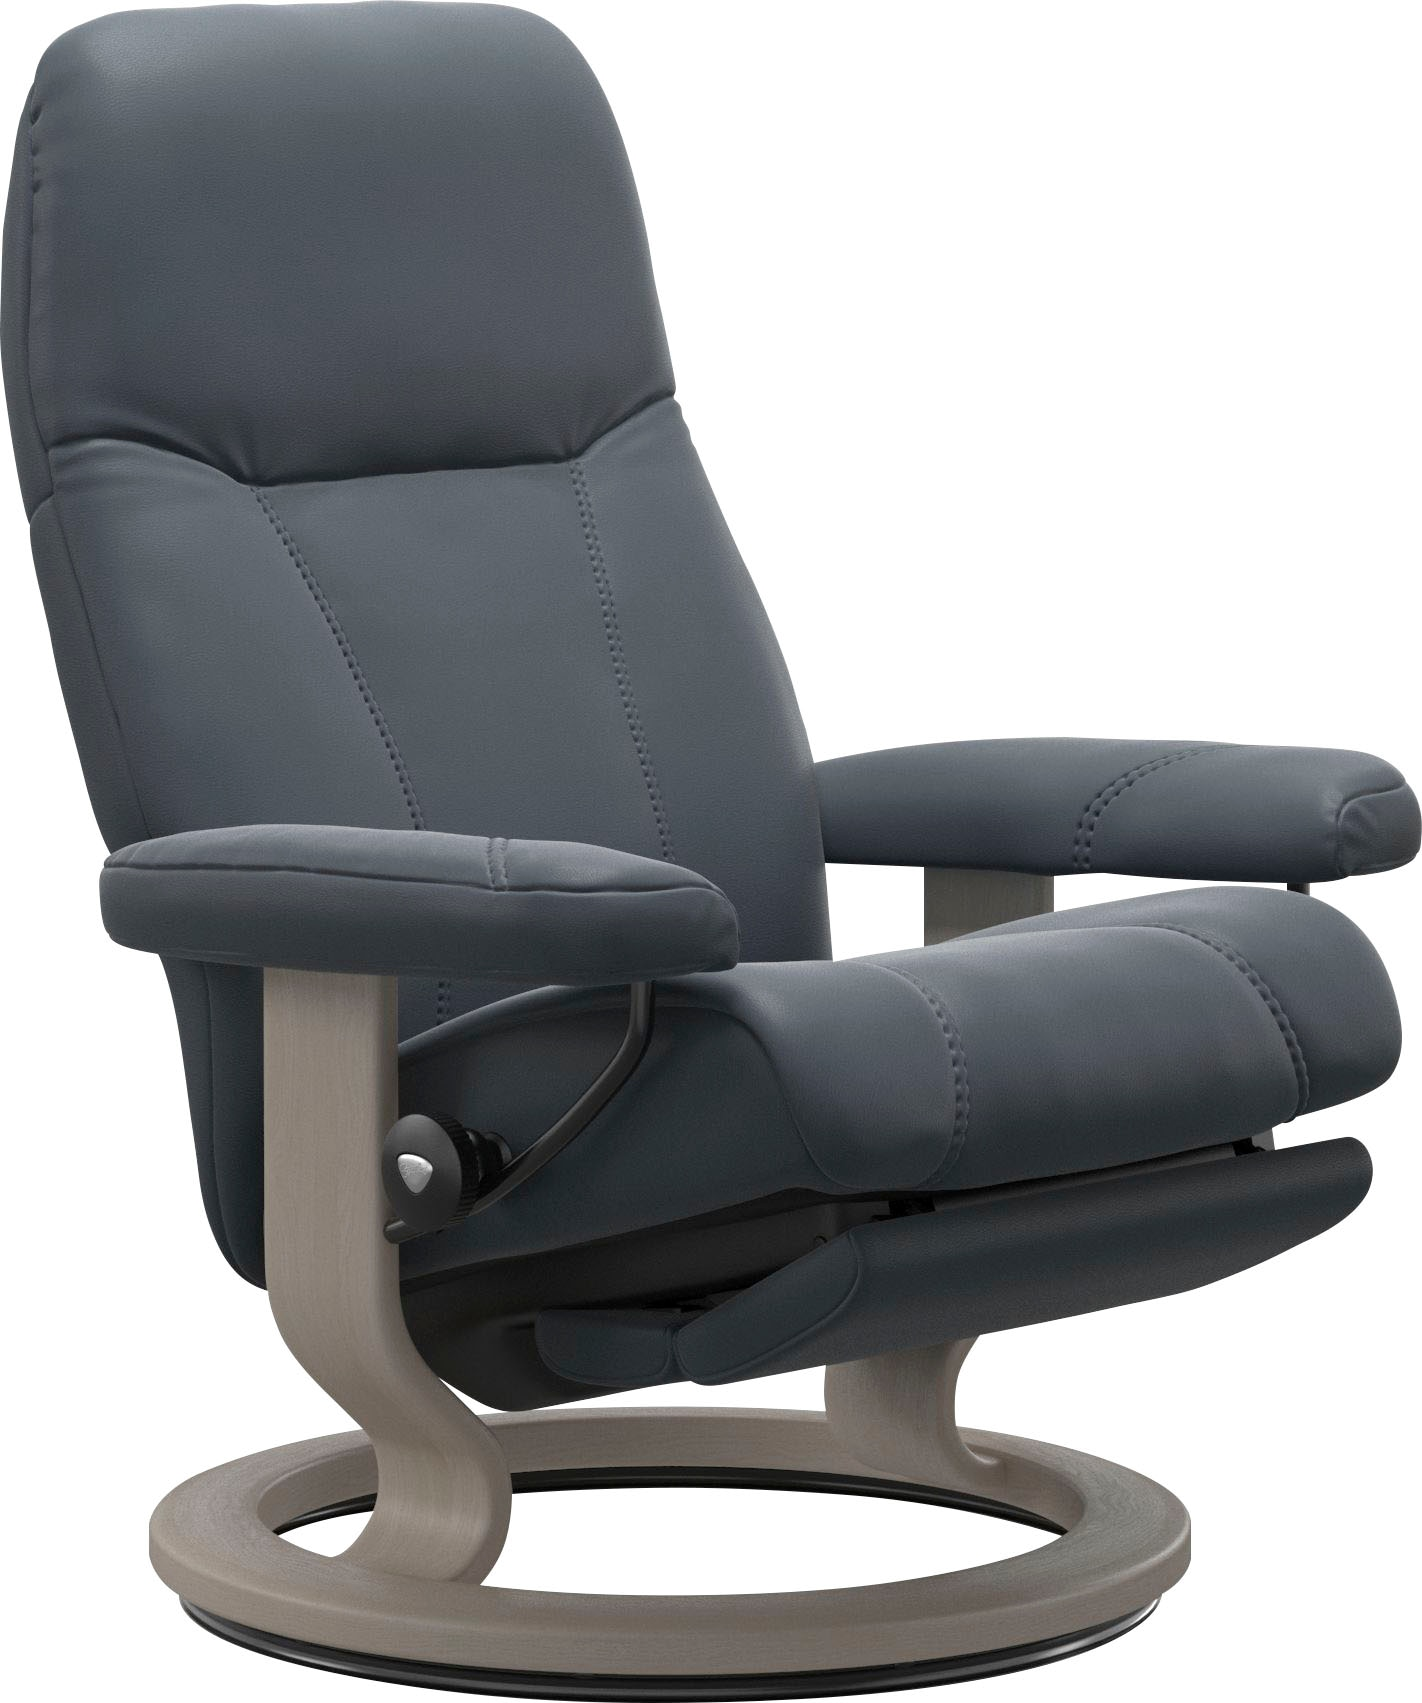 Stressless Relaxsessel Consul Bei Otto